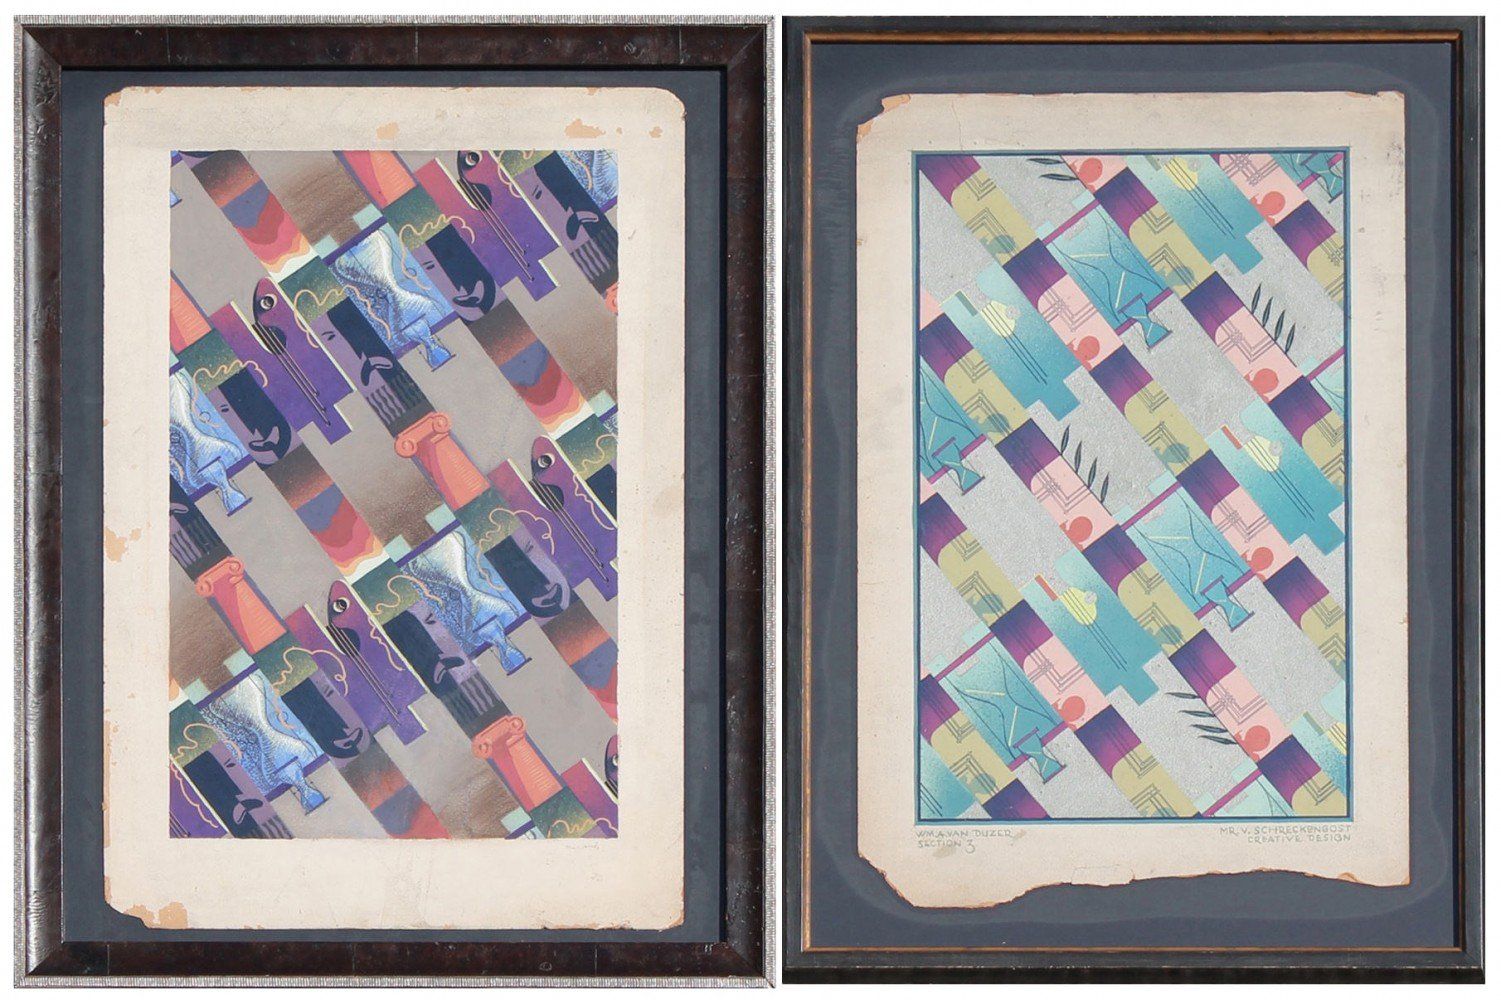 Two Studies for Graphic Designs by William A. Van Duzer